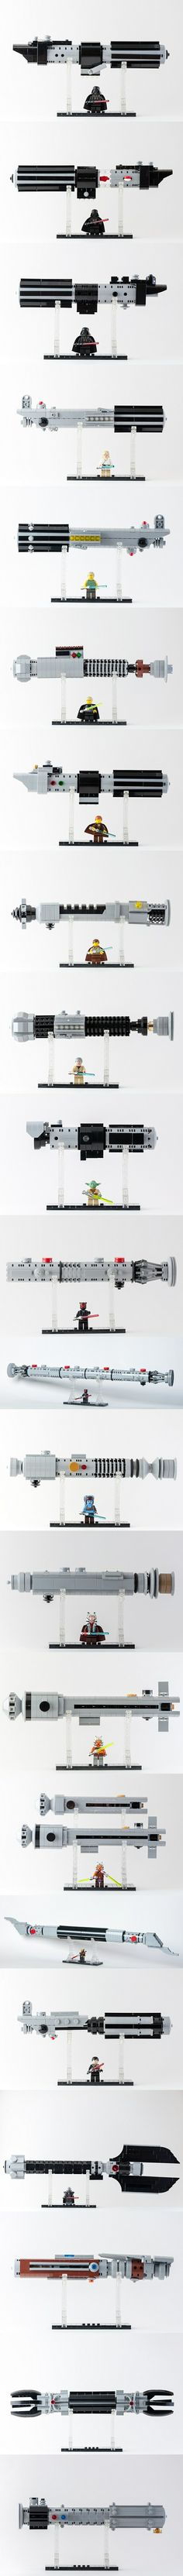 LEGO Star Wars Lightsabers